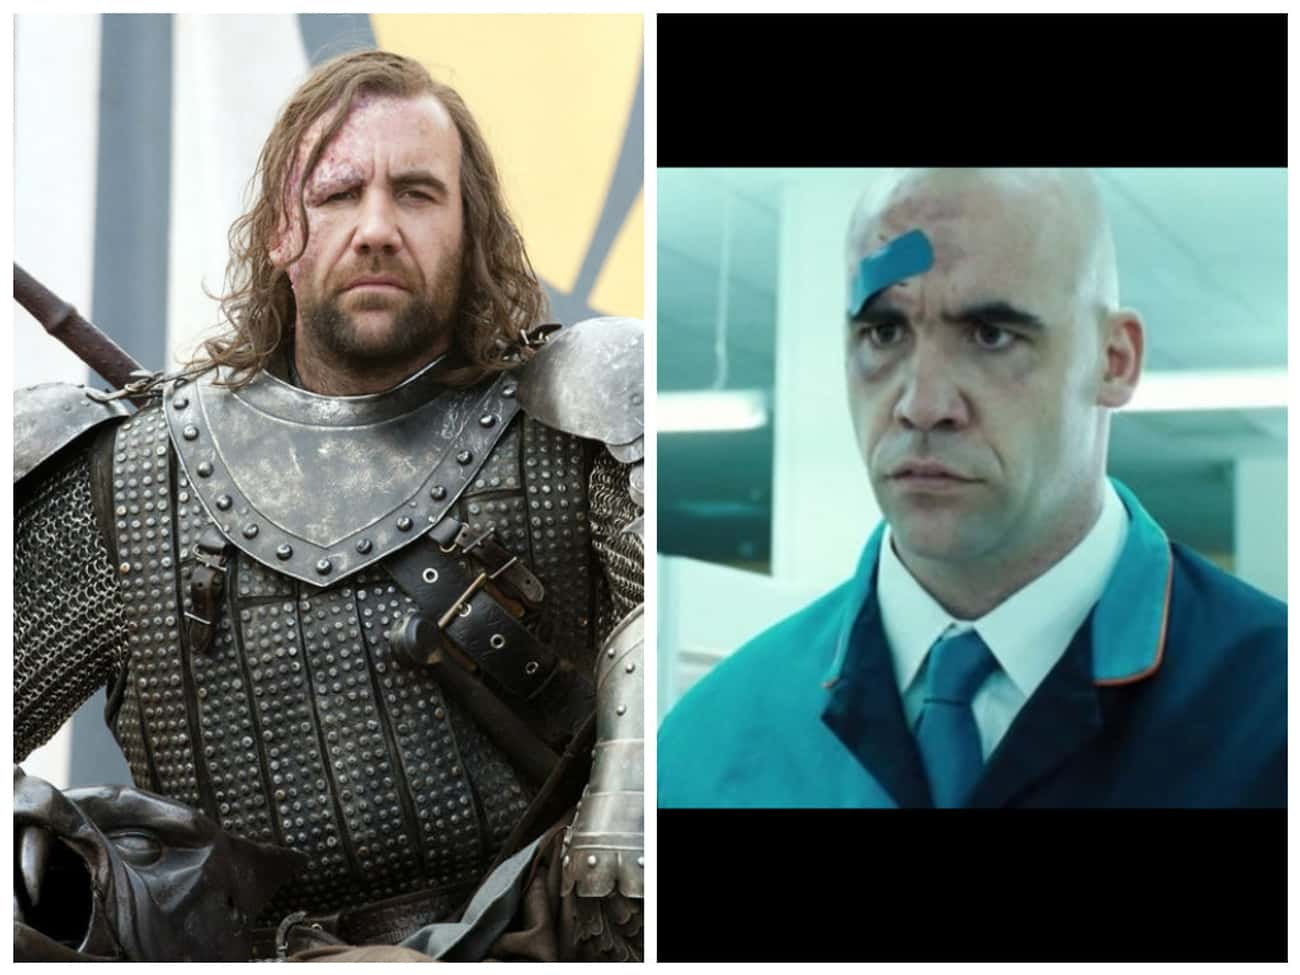 Rory McCann - Hot Fuzz is listed (or ranked) 2 on the list Times You've Seen the GoT Actors Before